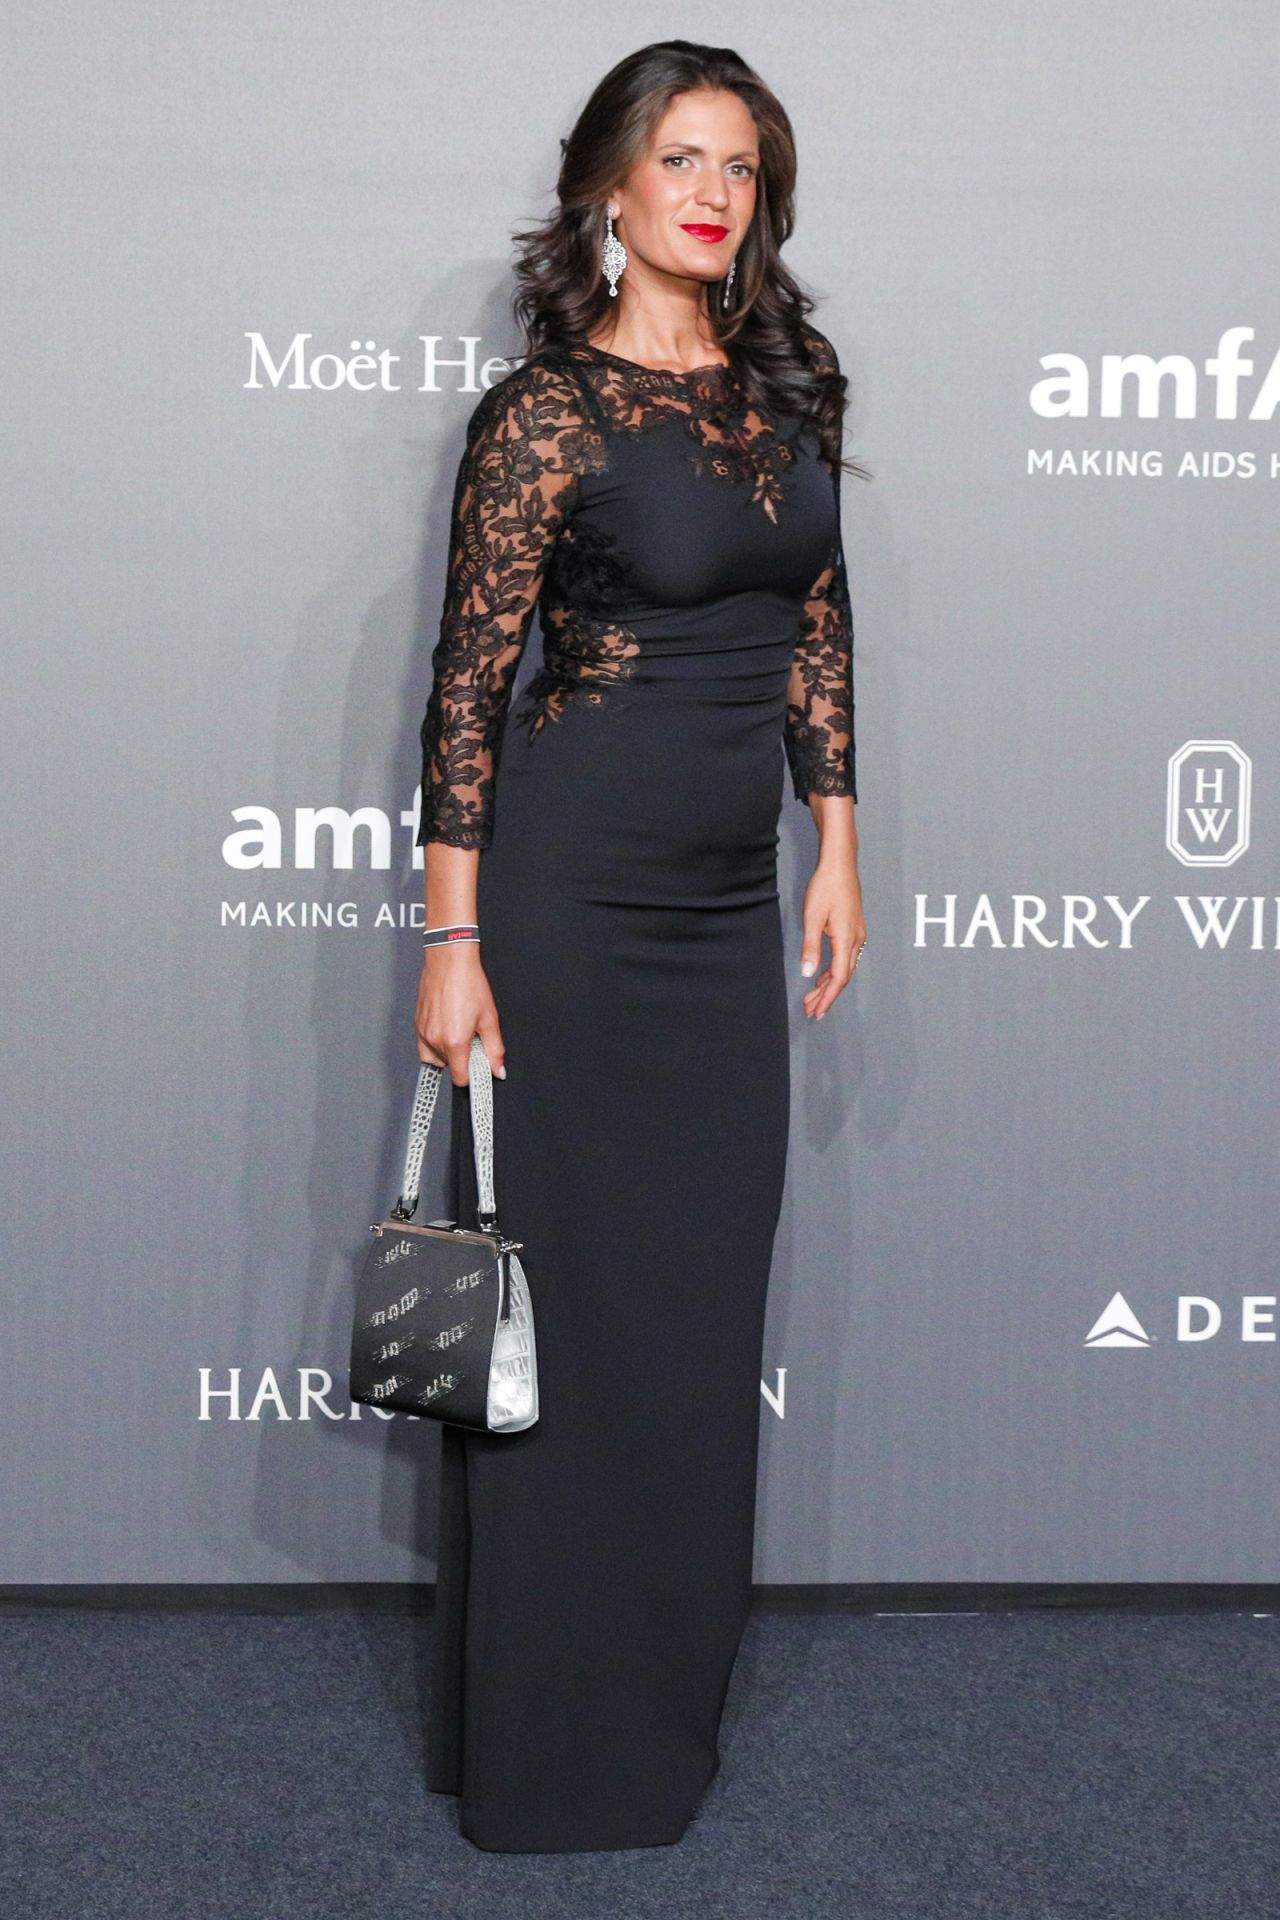 Inside the Star-Studded 20th Annual amfAR Gala in New York